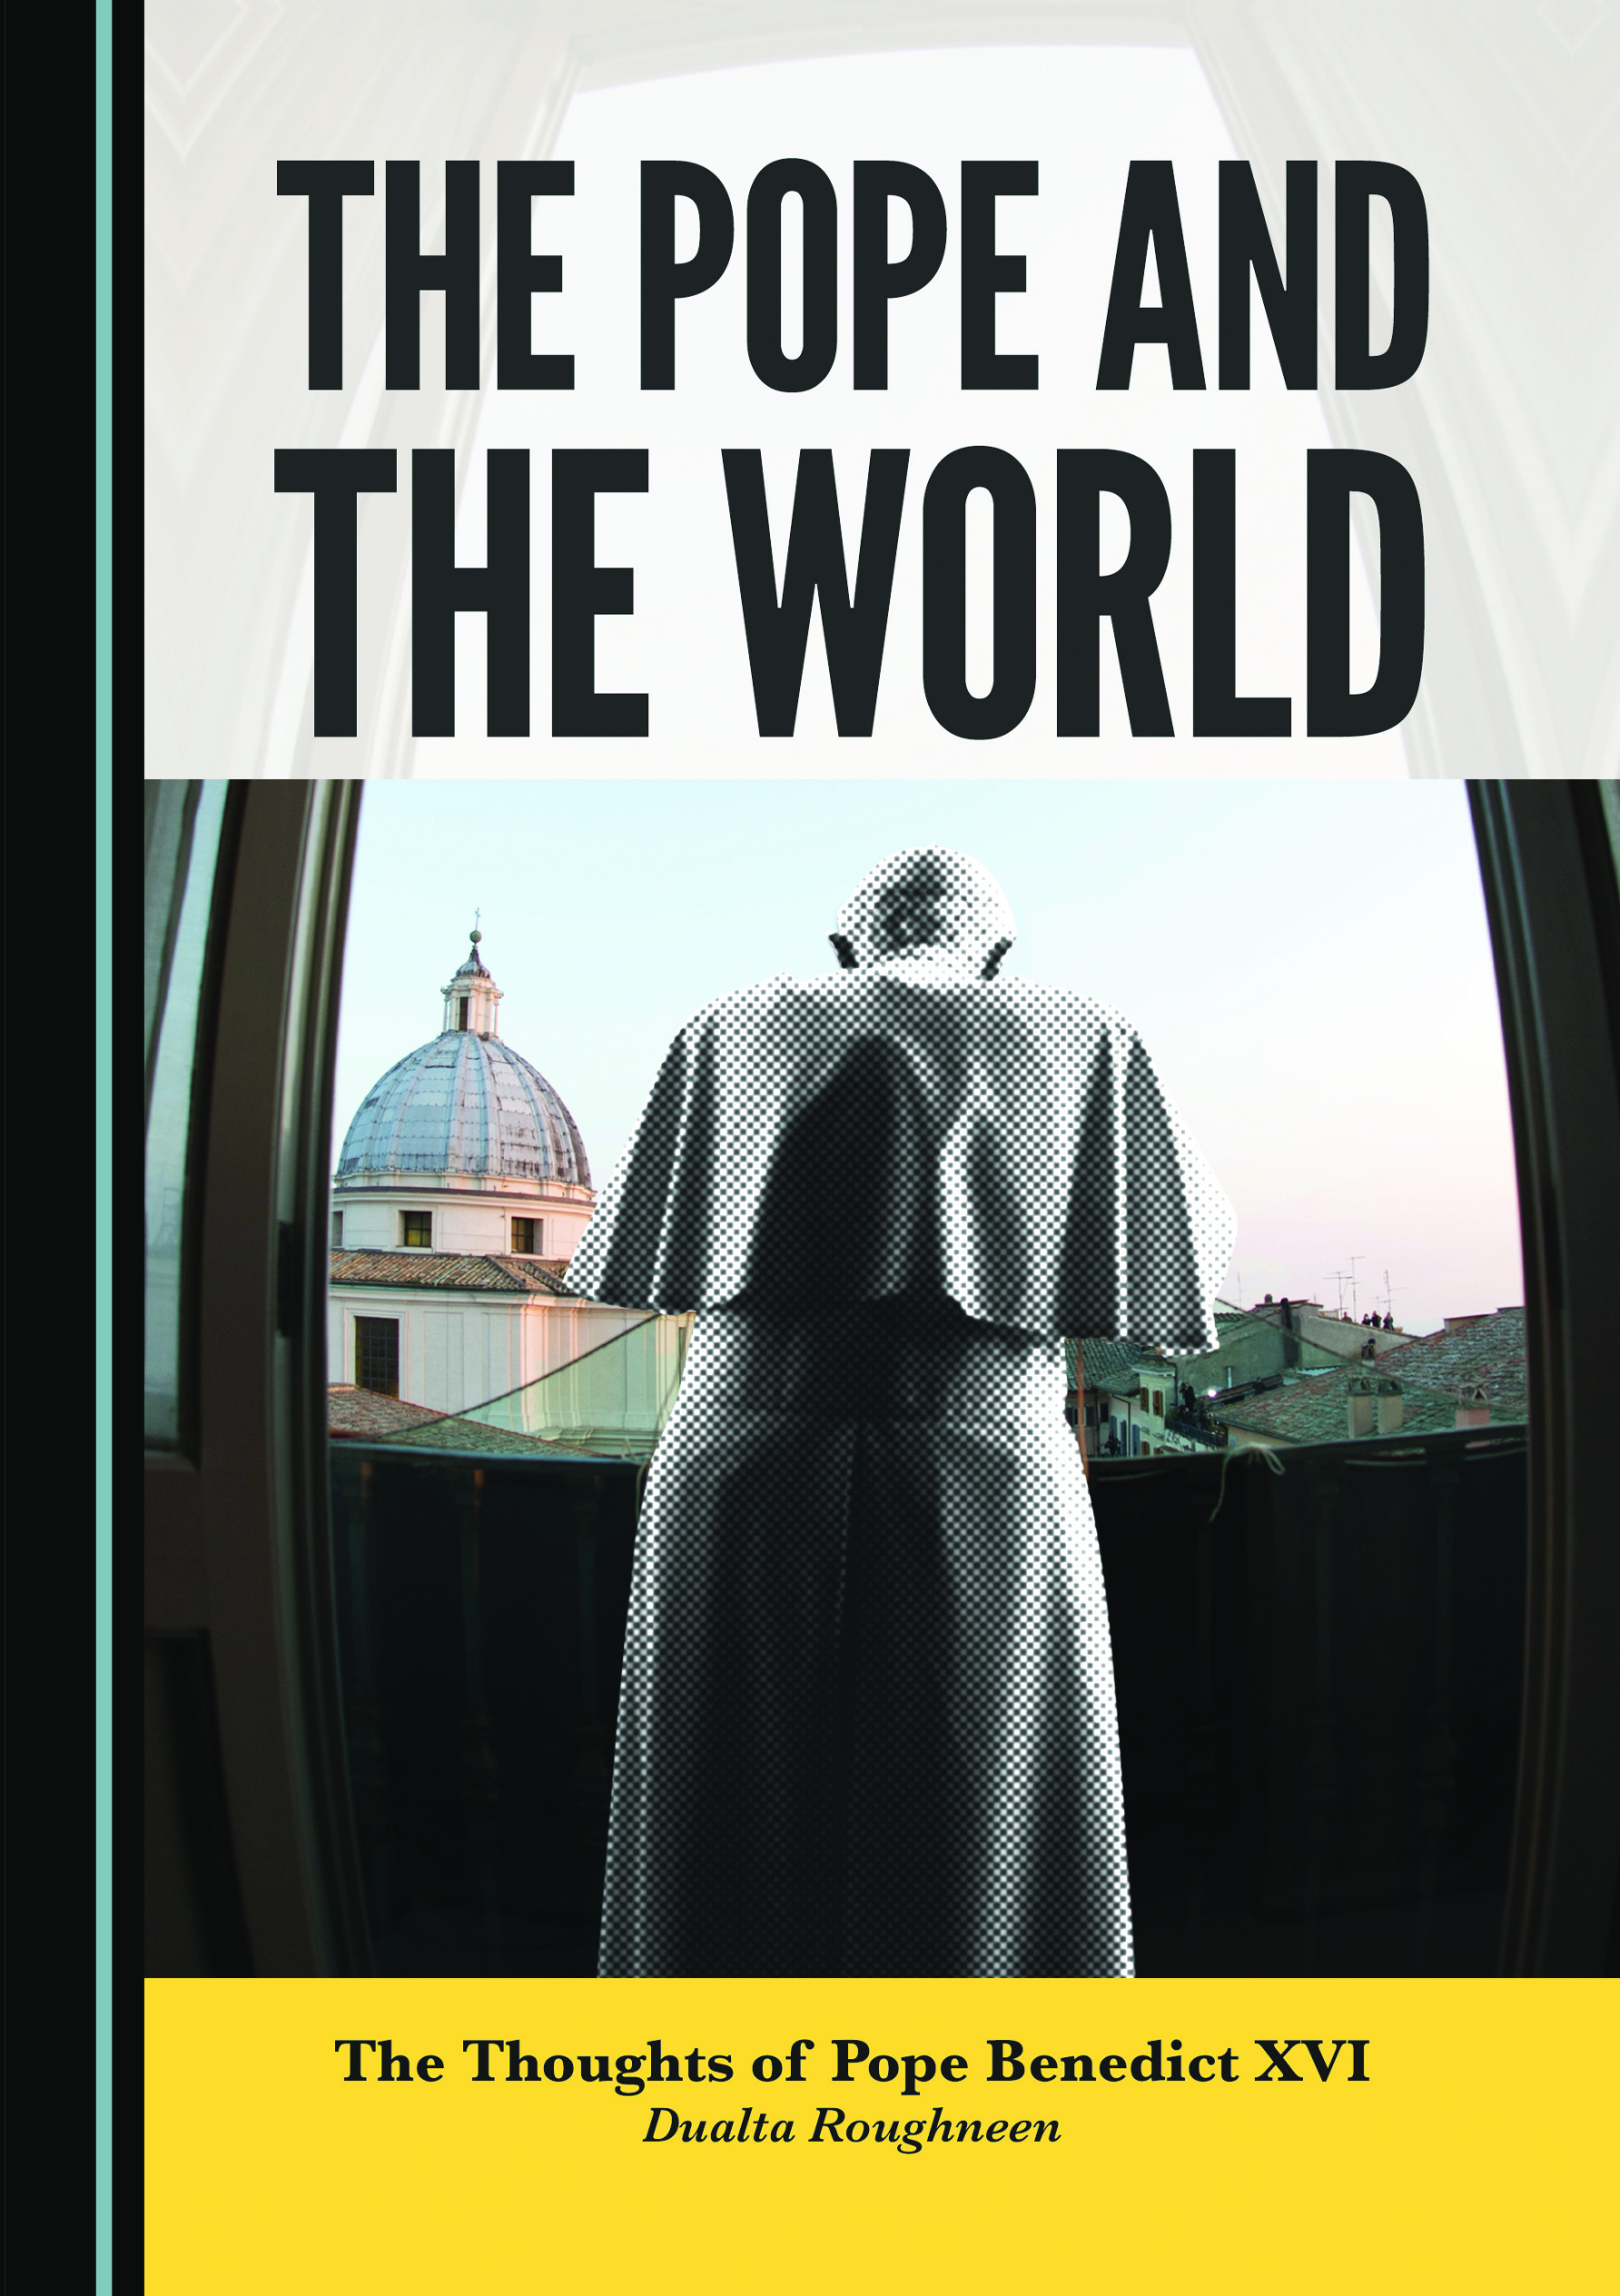 The Pope and the World: The Thoughts of Pope Benedict XVI